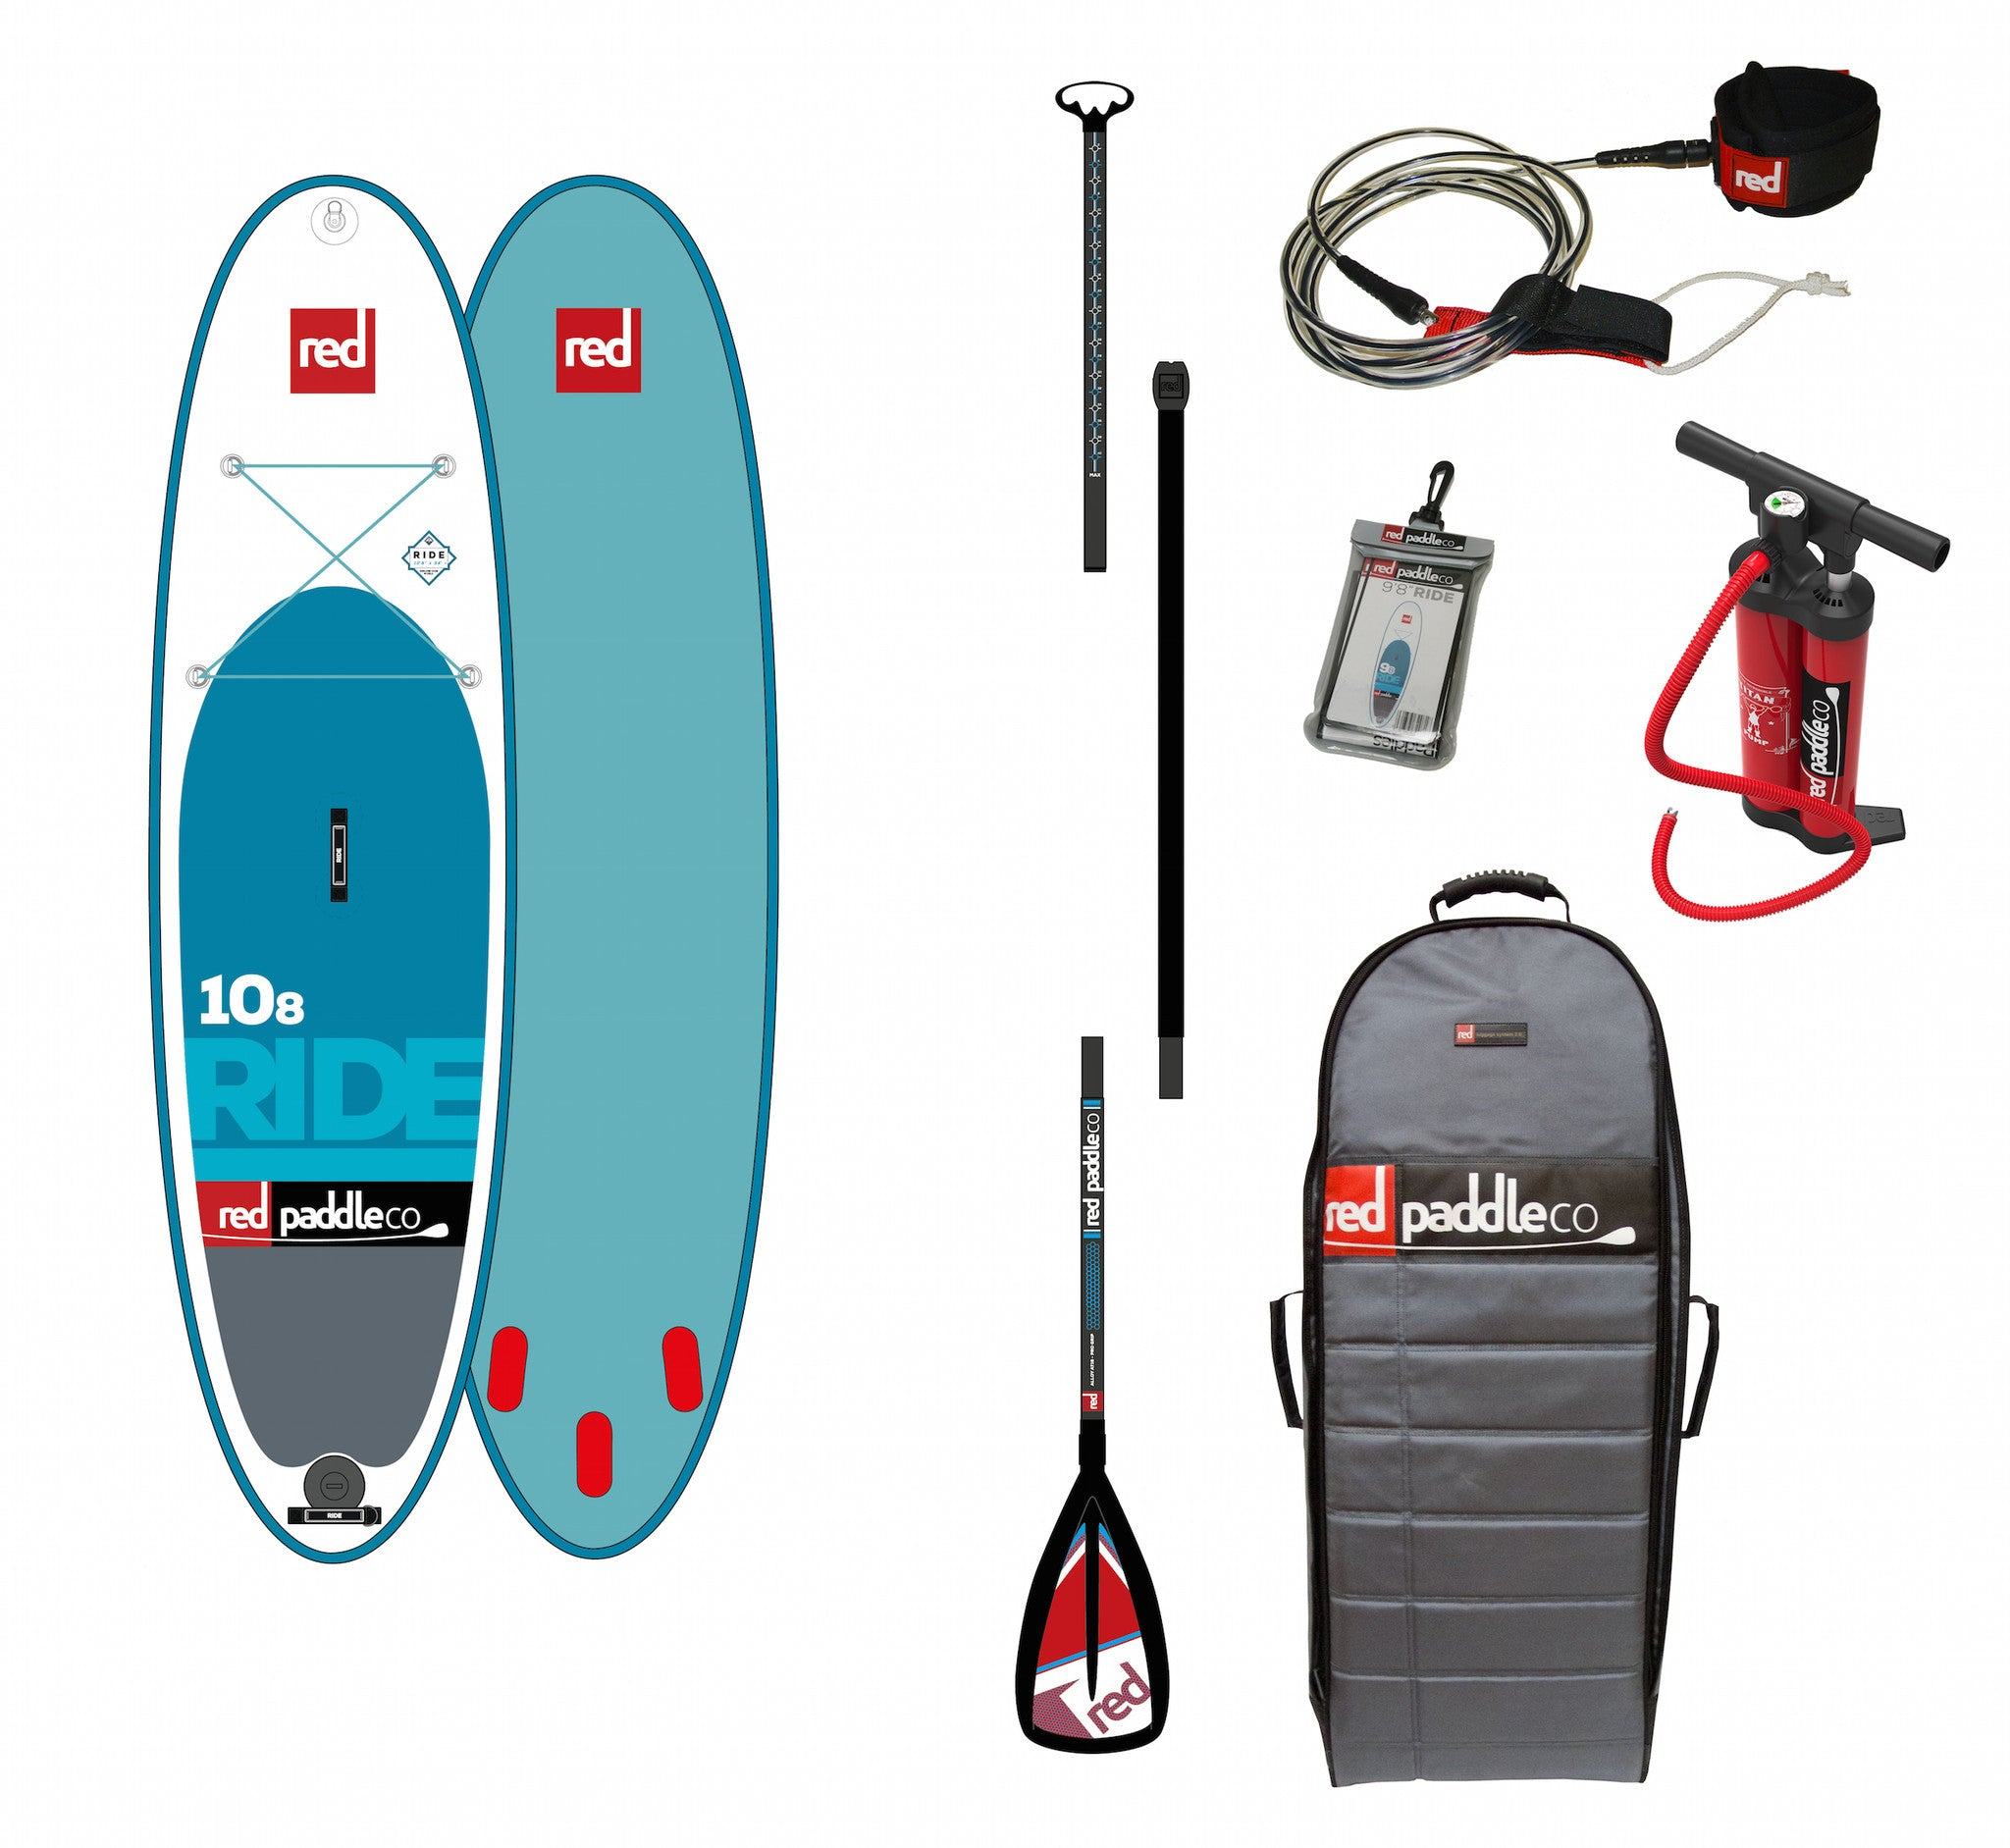 "Red Paddle 10'8"" Ride"